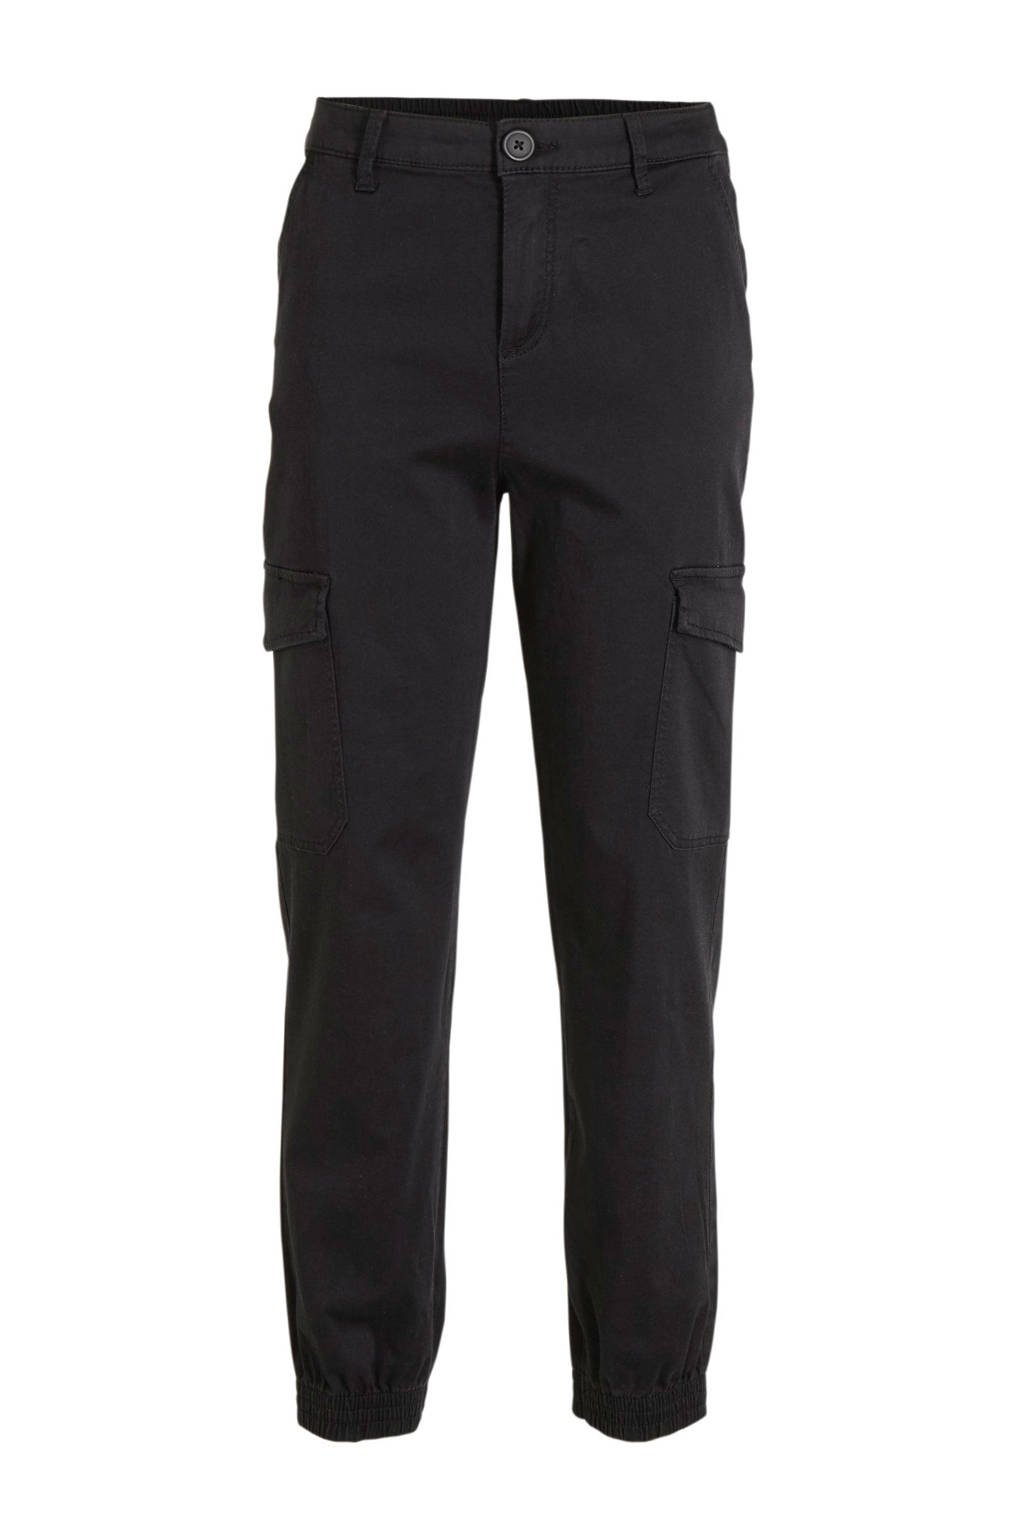 C&A Here & There straight fit cargo broek realblack, RealBlack